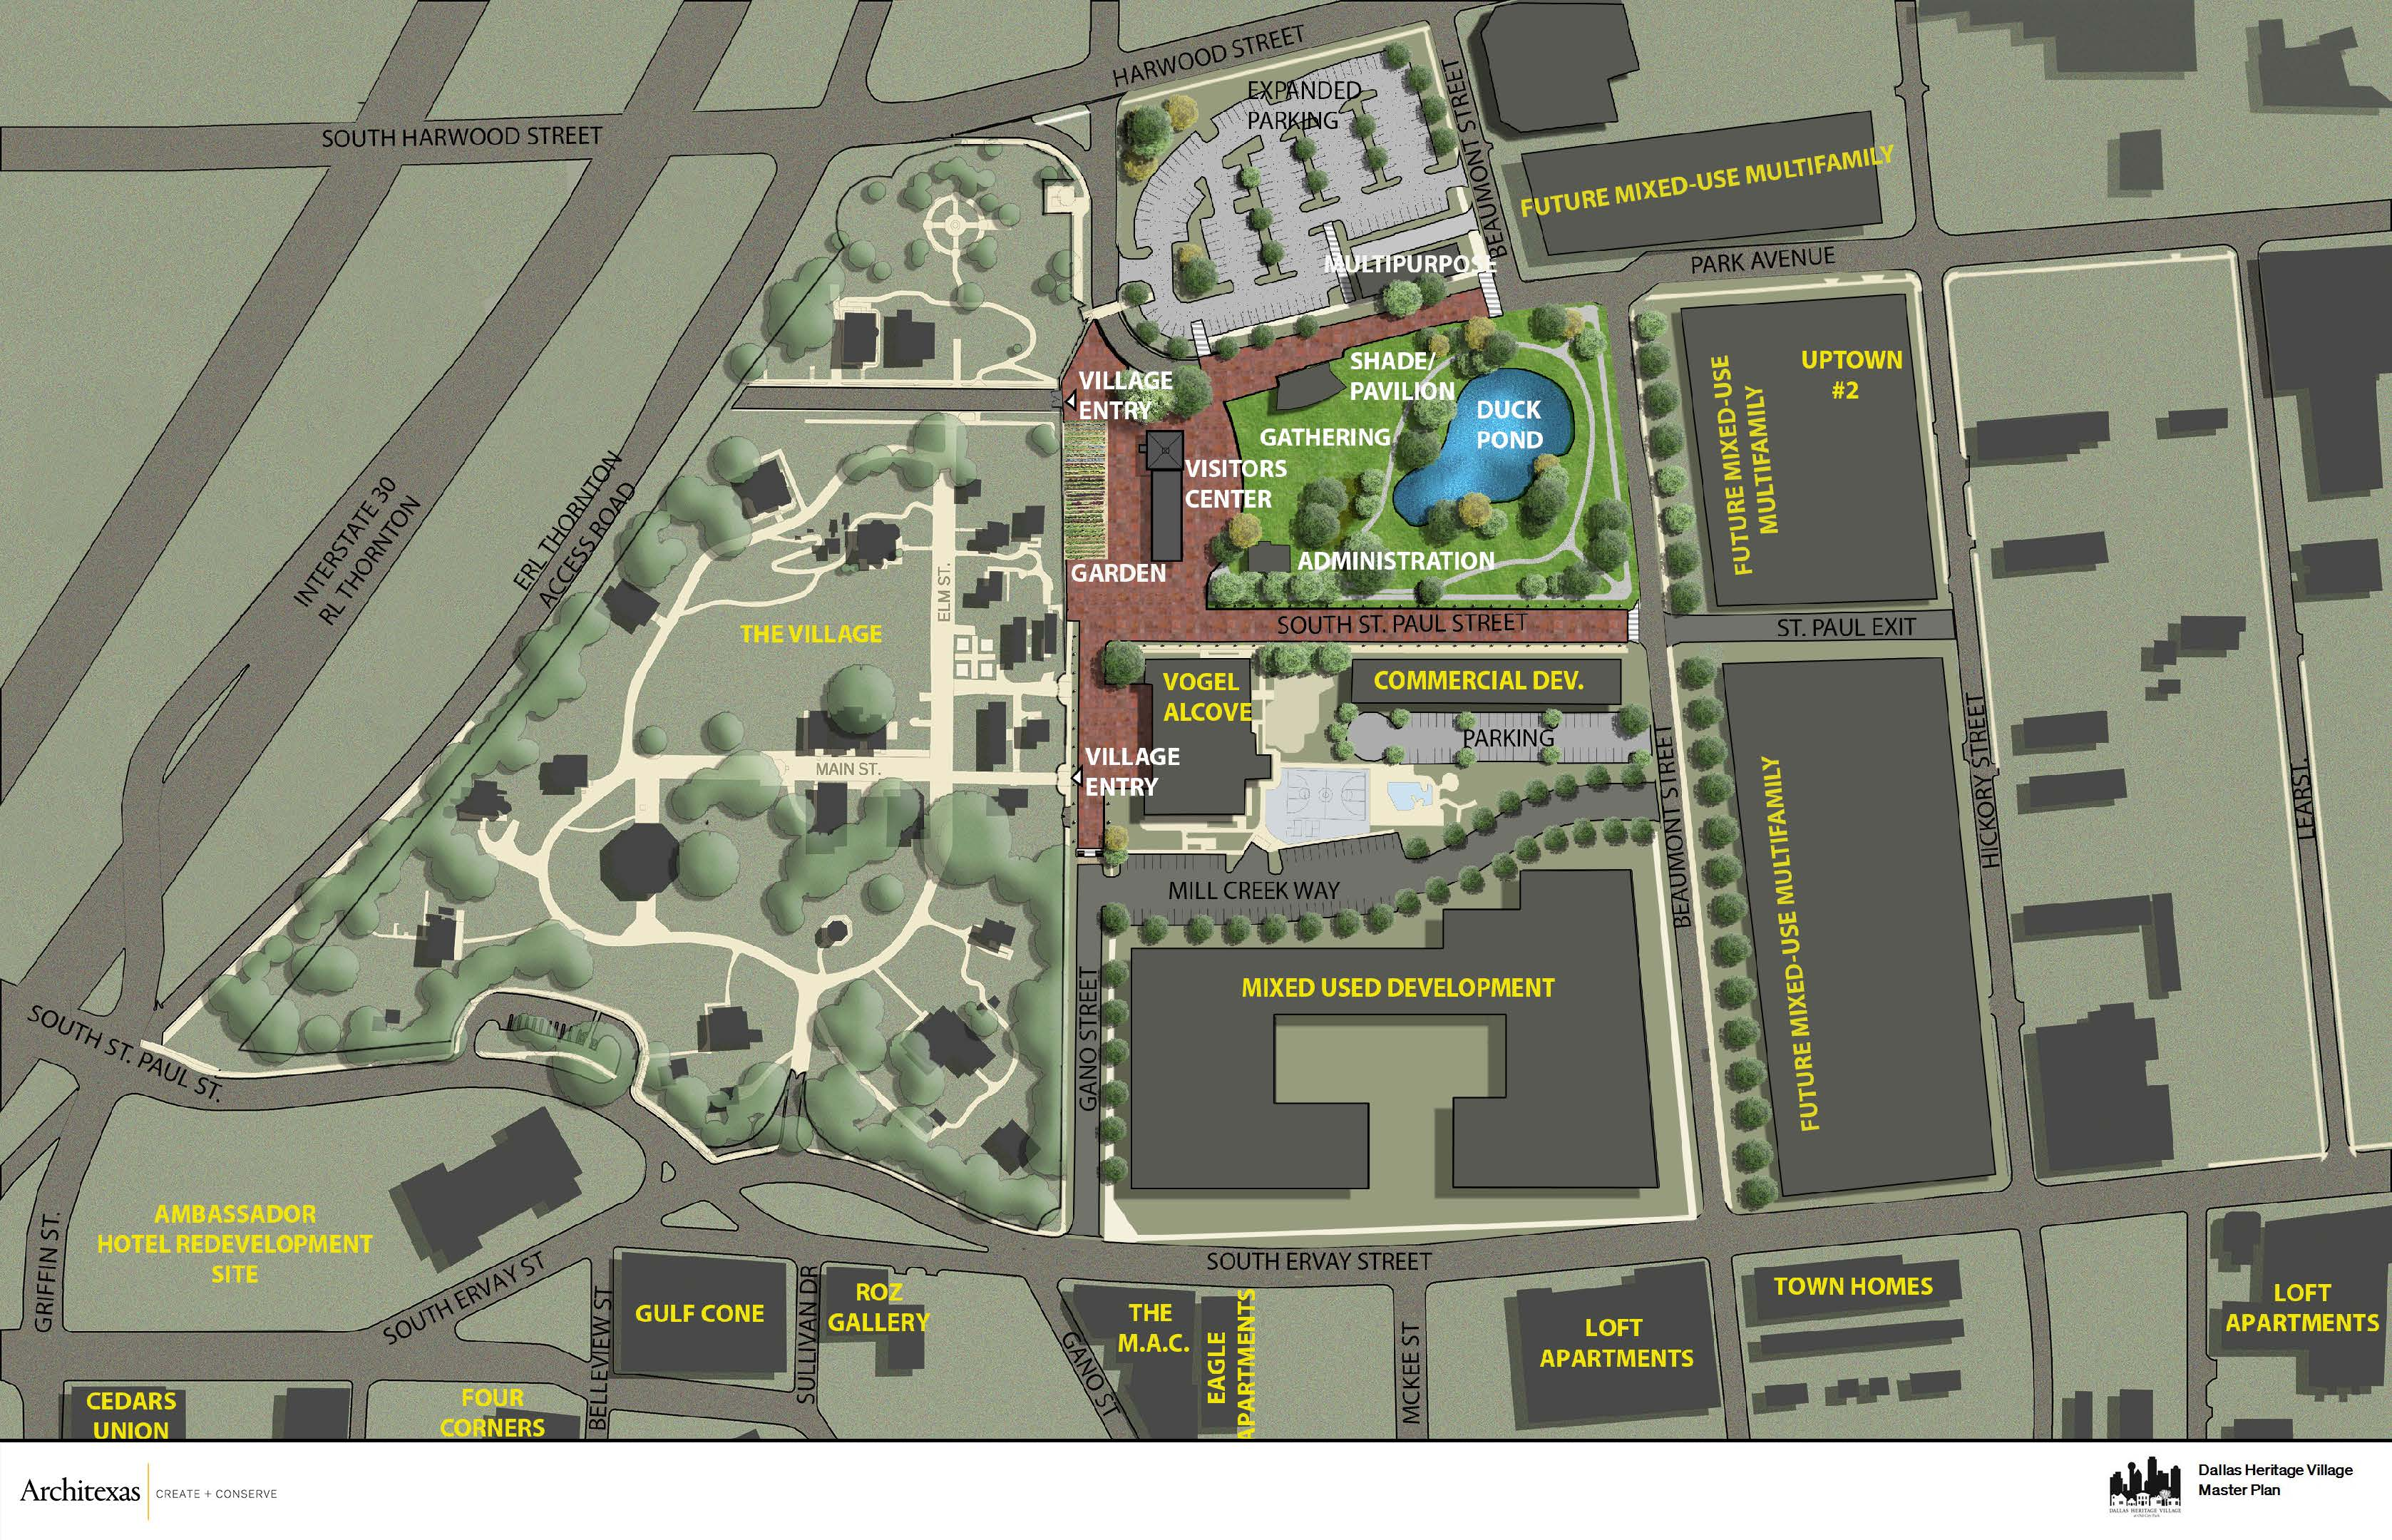 1720_Dallas Heritage Village - NEW PLAN OVERALL w title